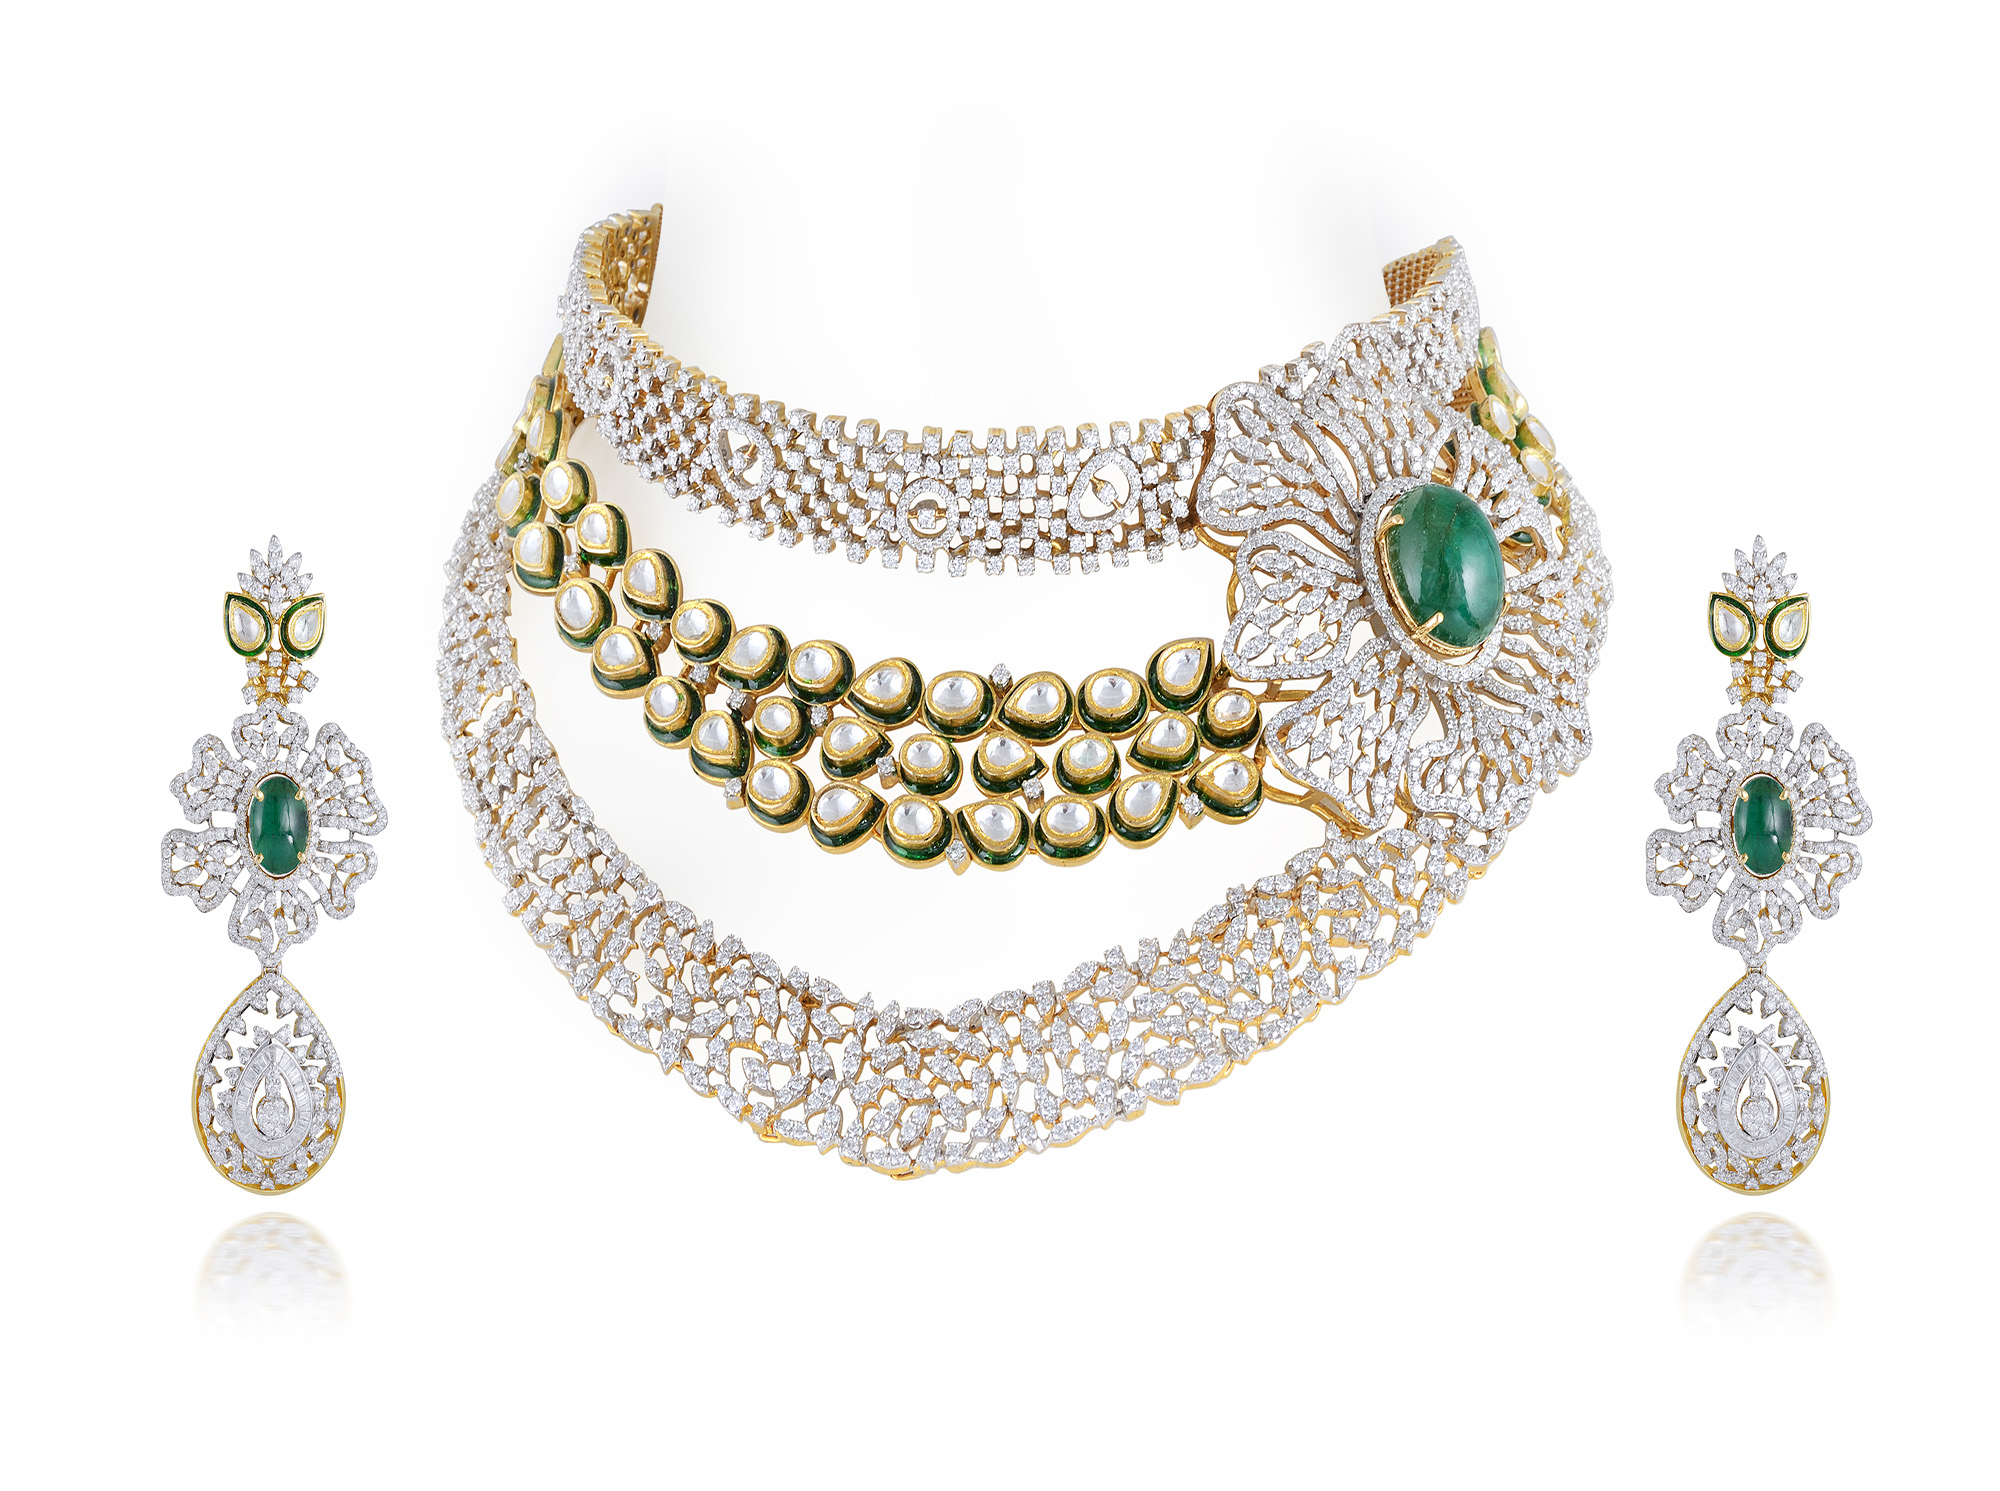 GEHNA-JEWELLERS7-DIAMOND-JEWELLERY.jpg